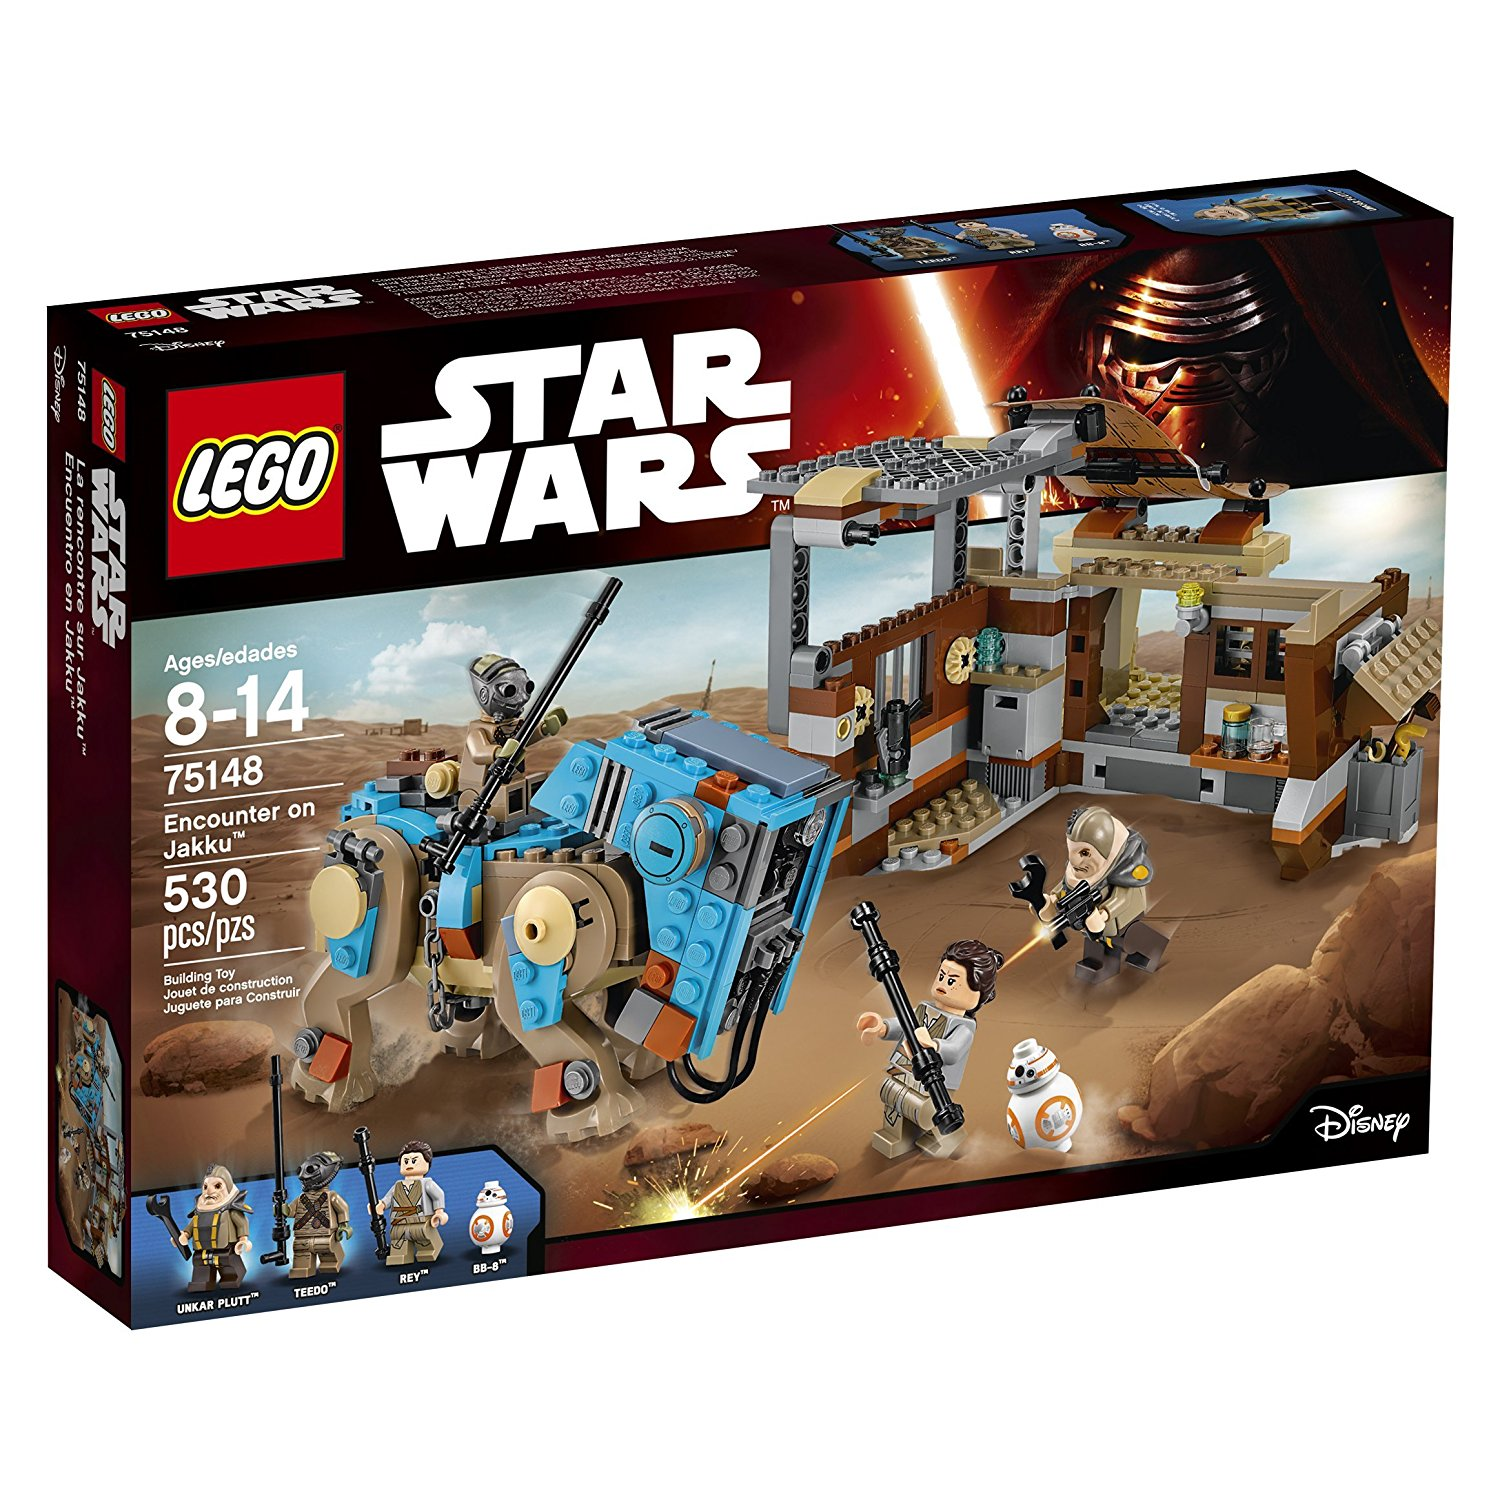 Up to 50% Off Green Toys and Star Wars